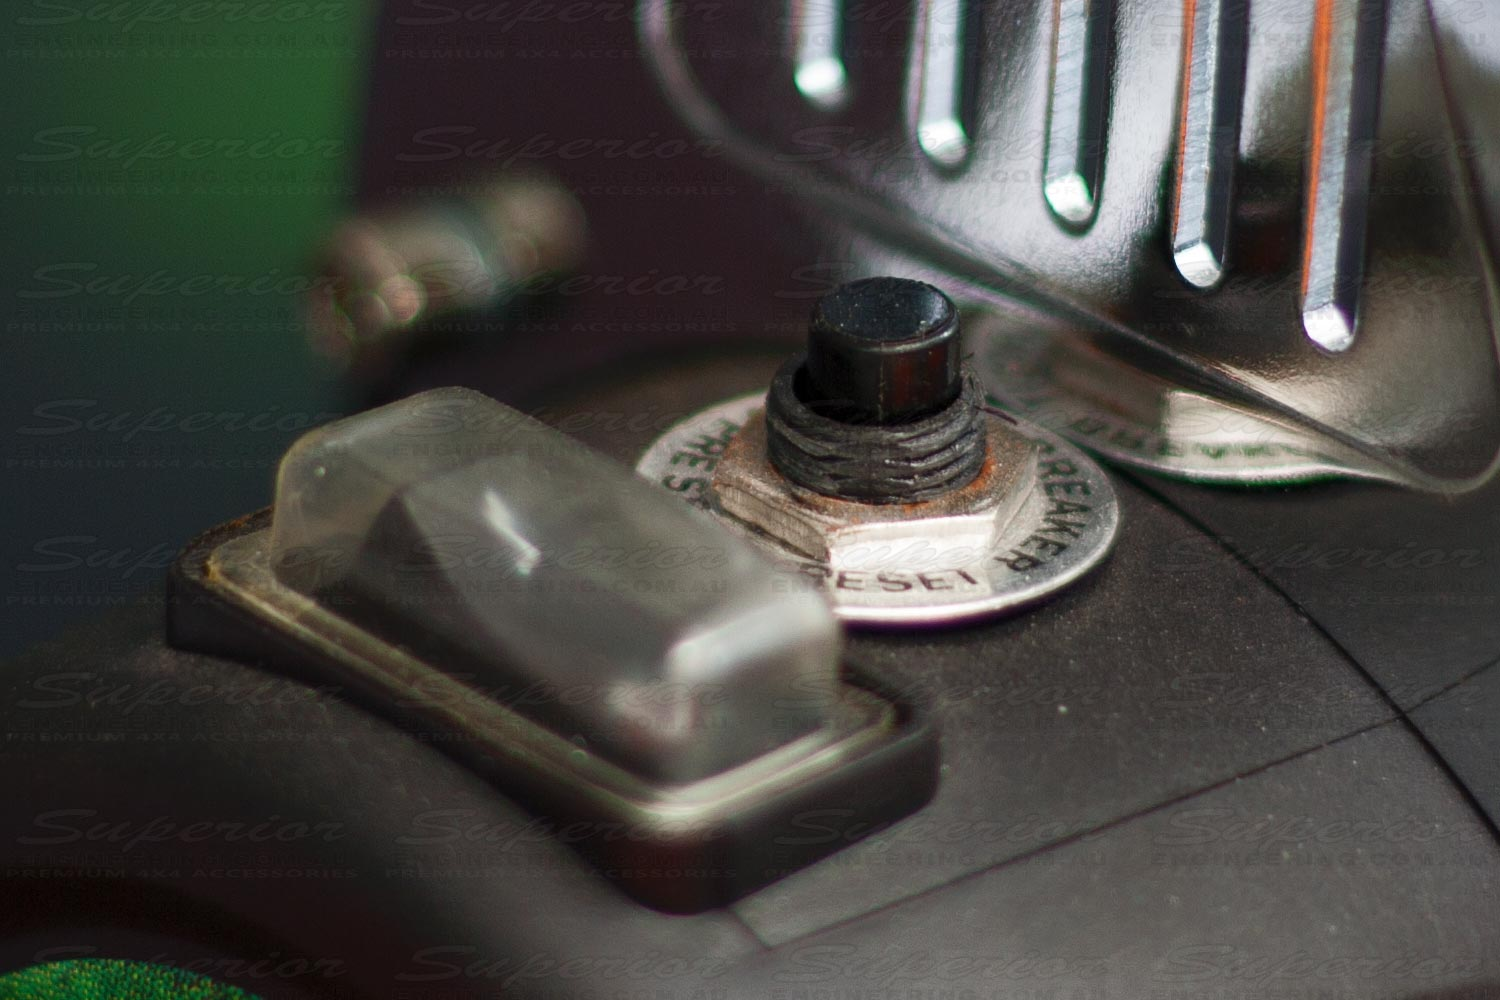 On / Off switch and reset button